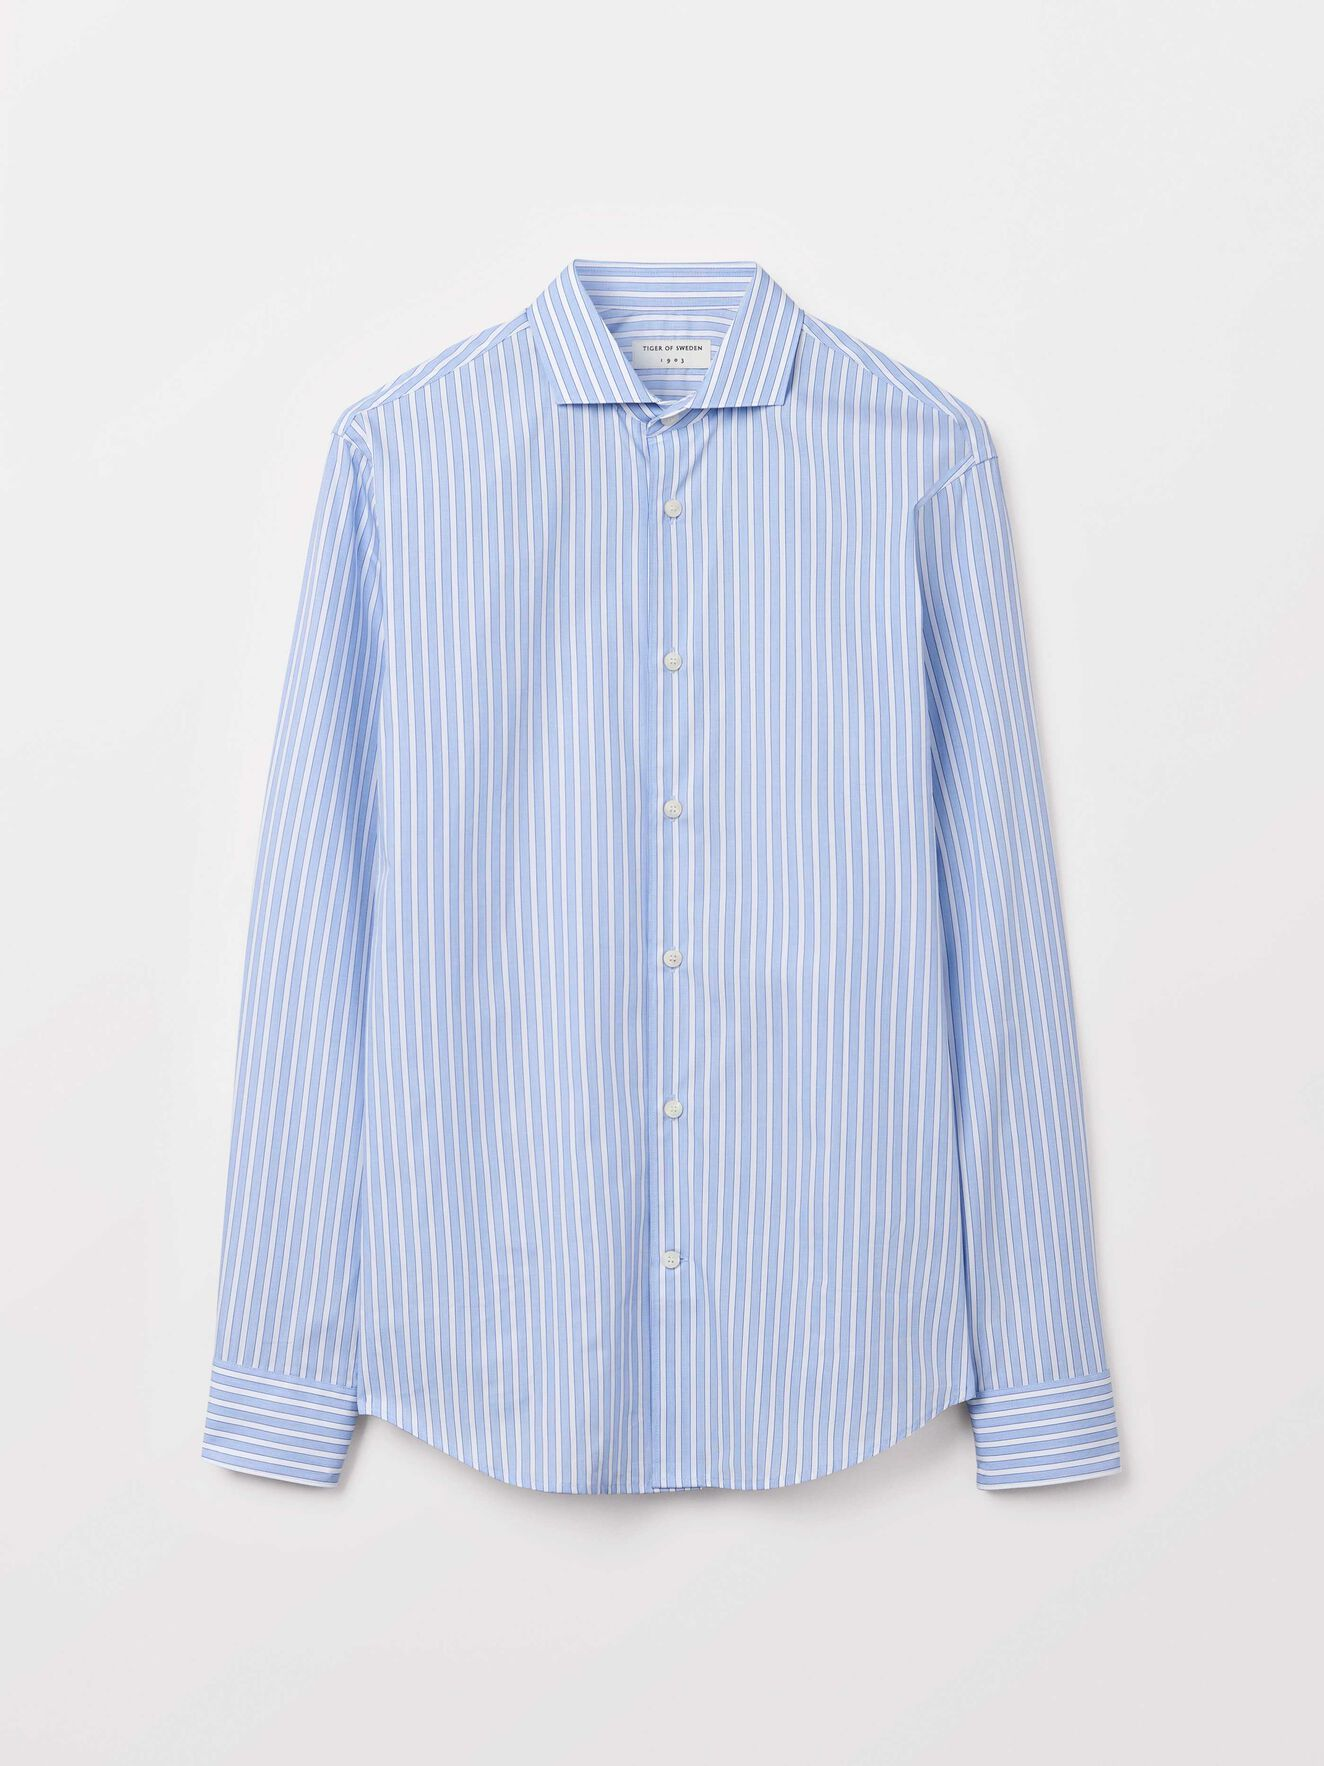 Farrell 5 Shirt in Light blue from Tiger of Sweden